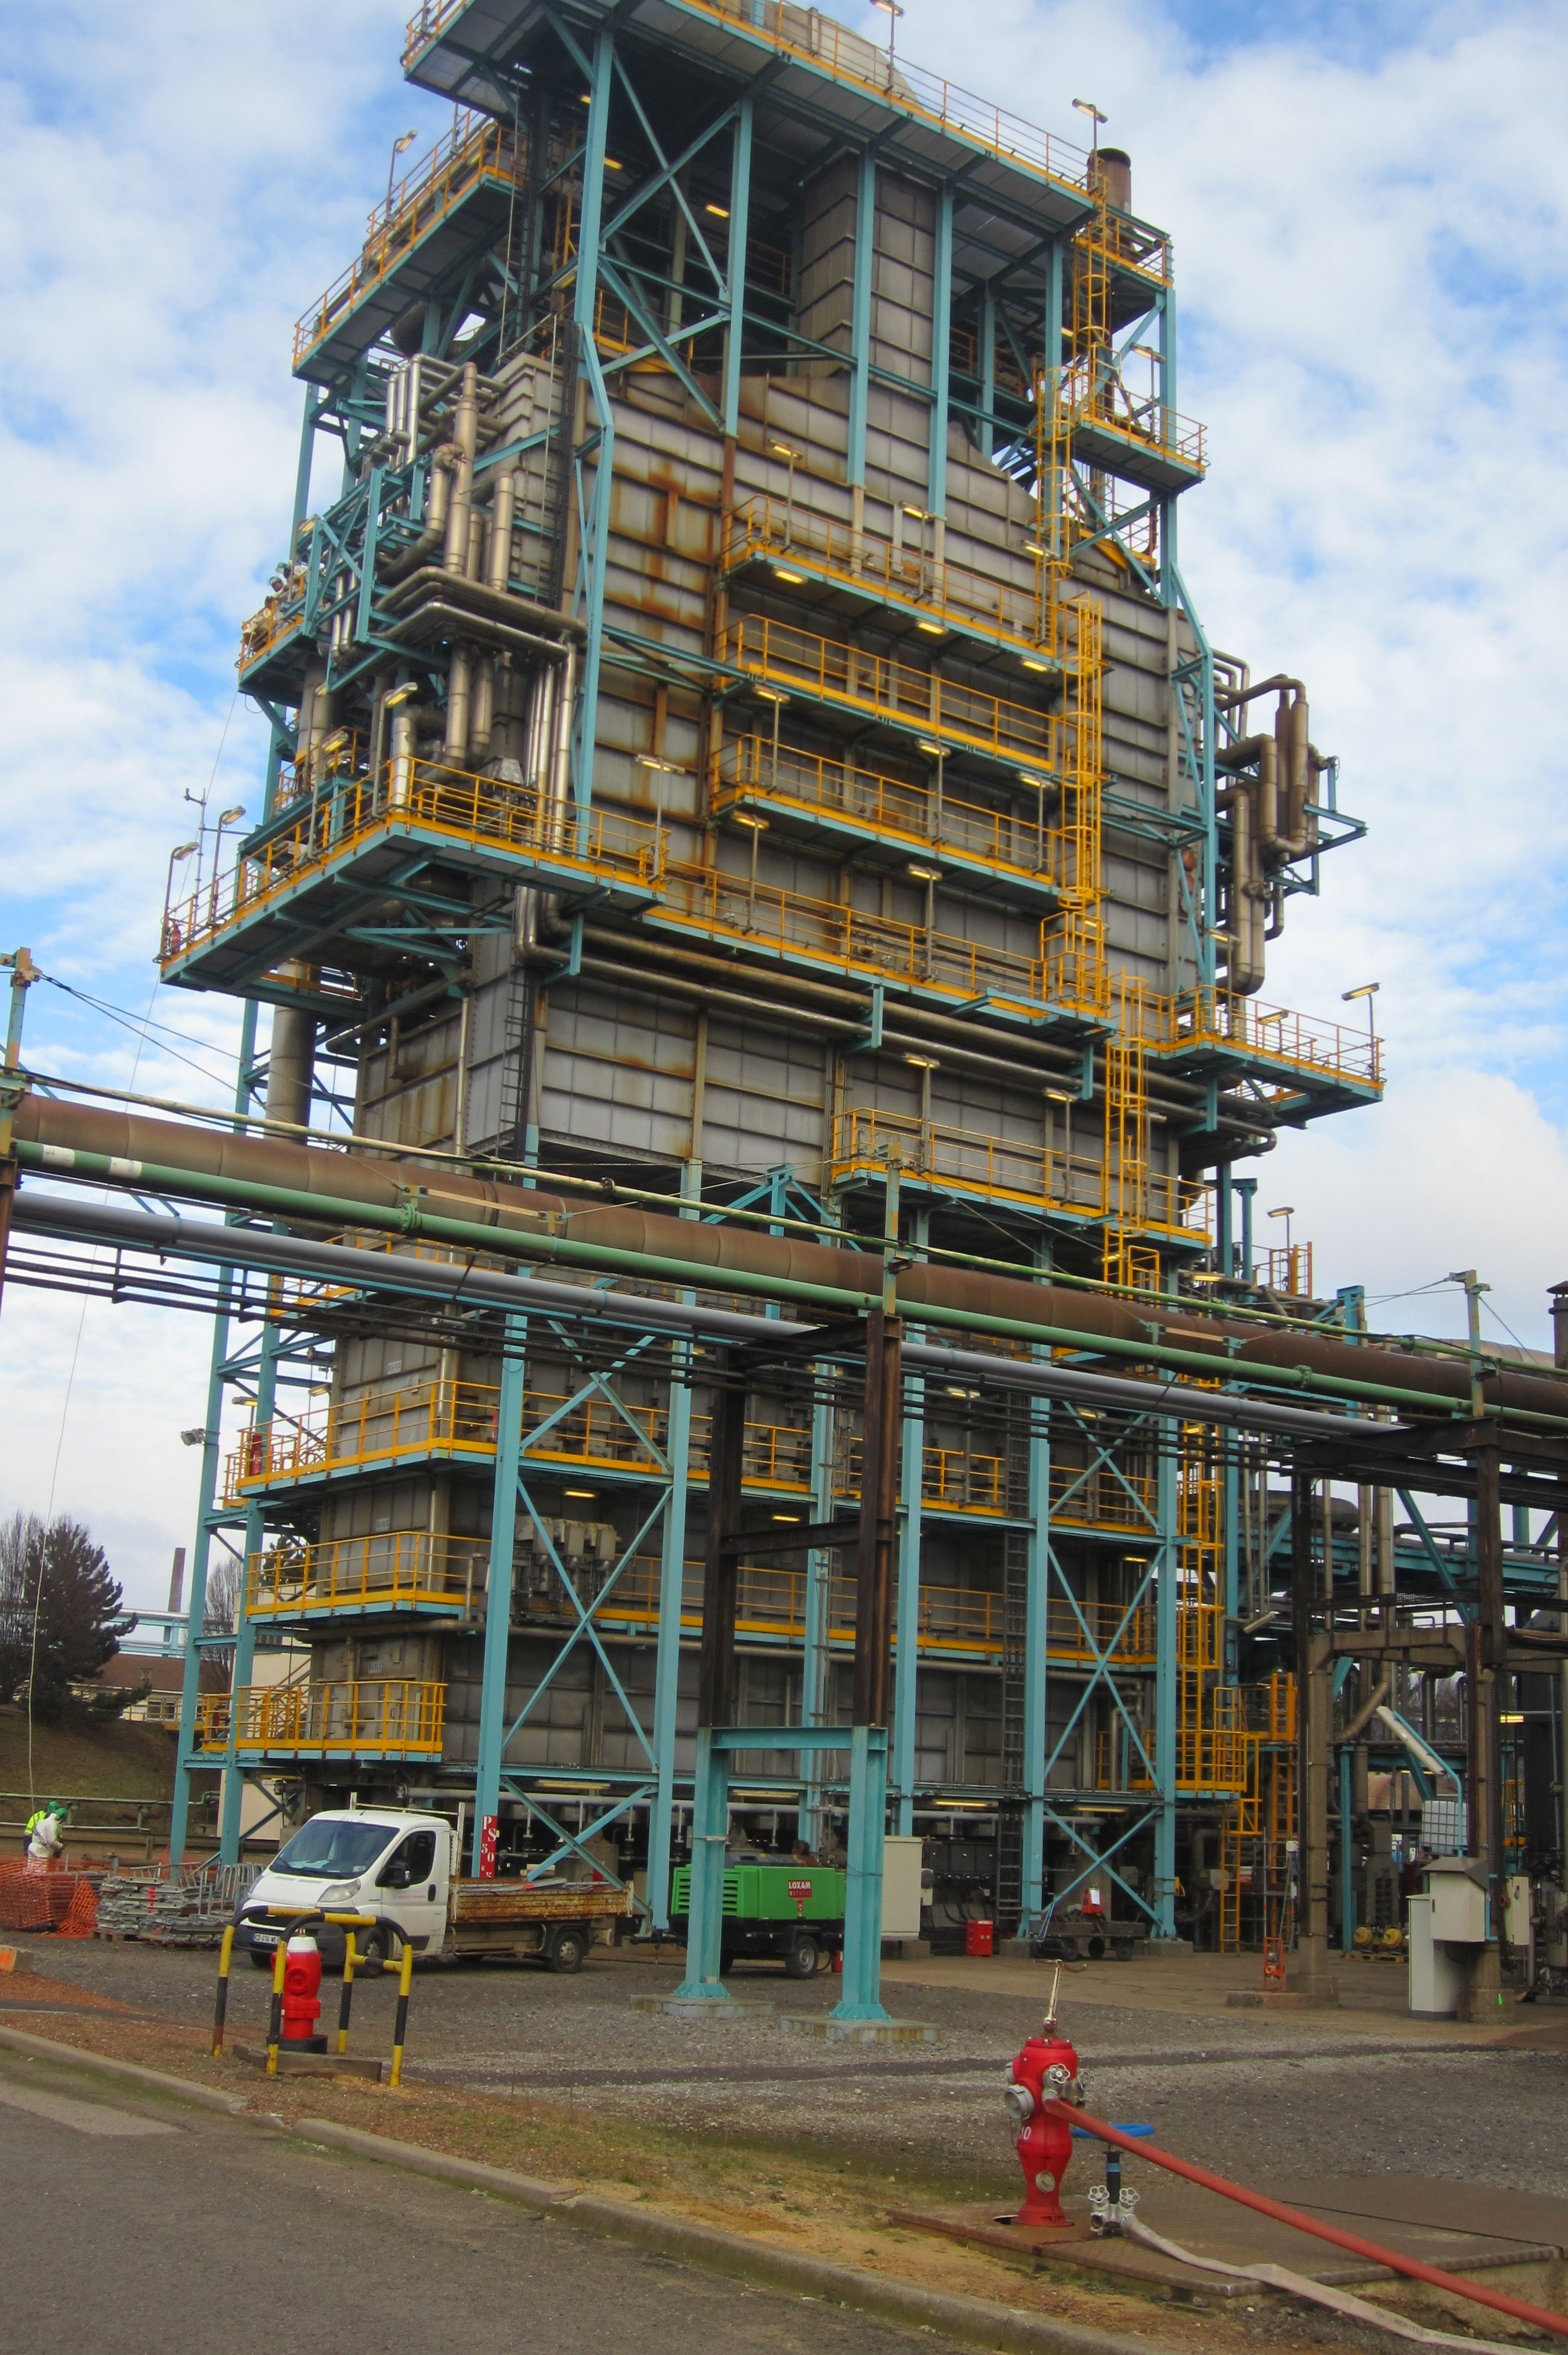 used ethylene plant for sale at phoenix equipment